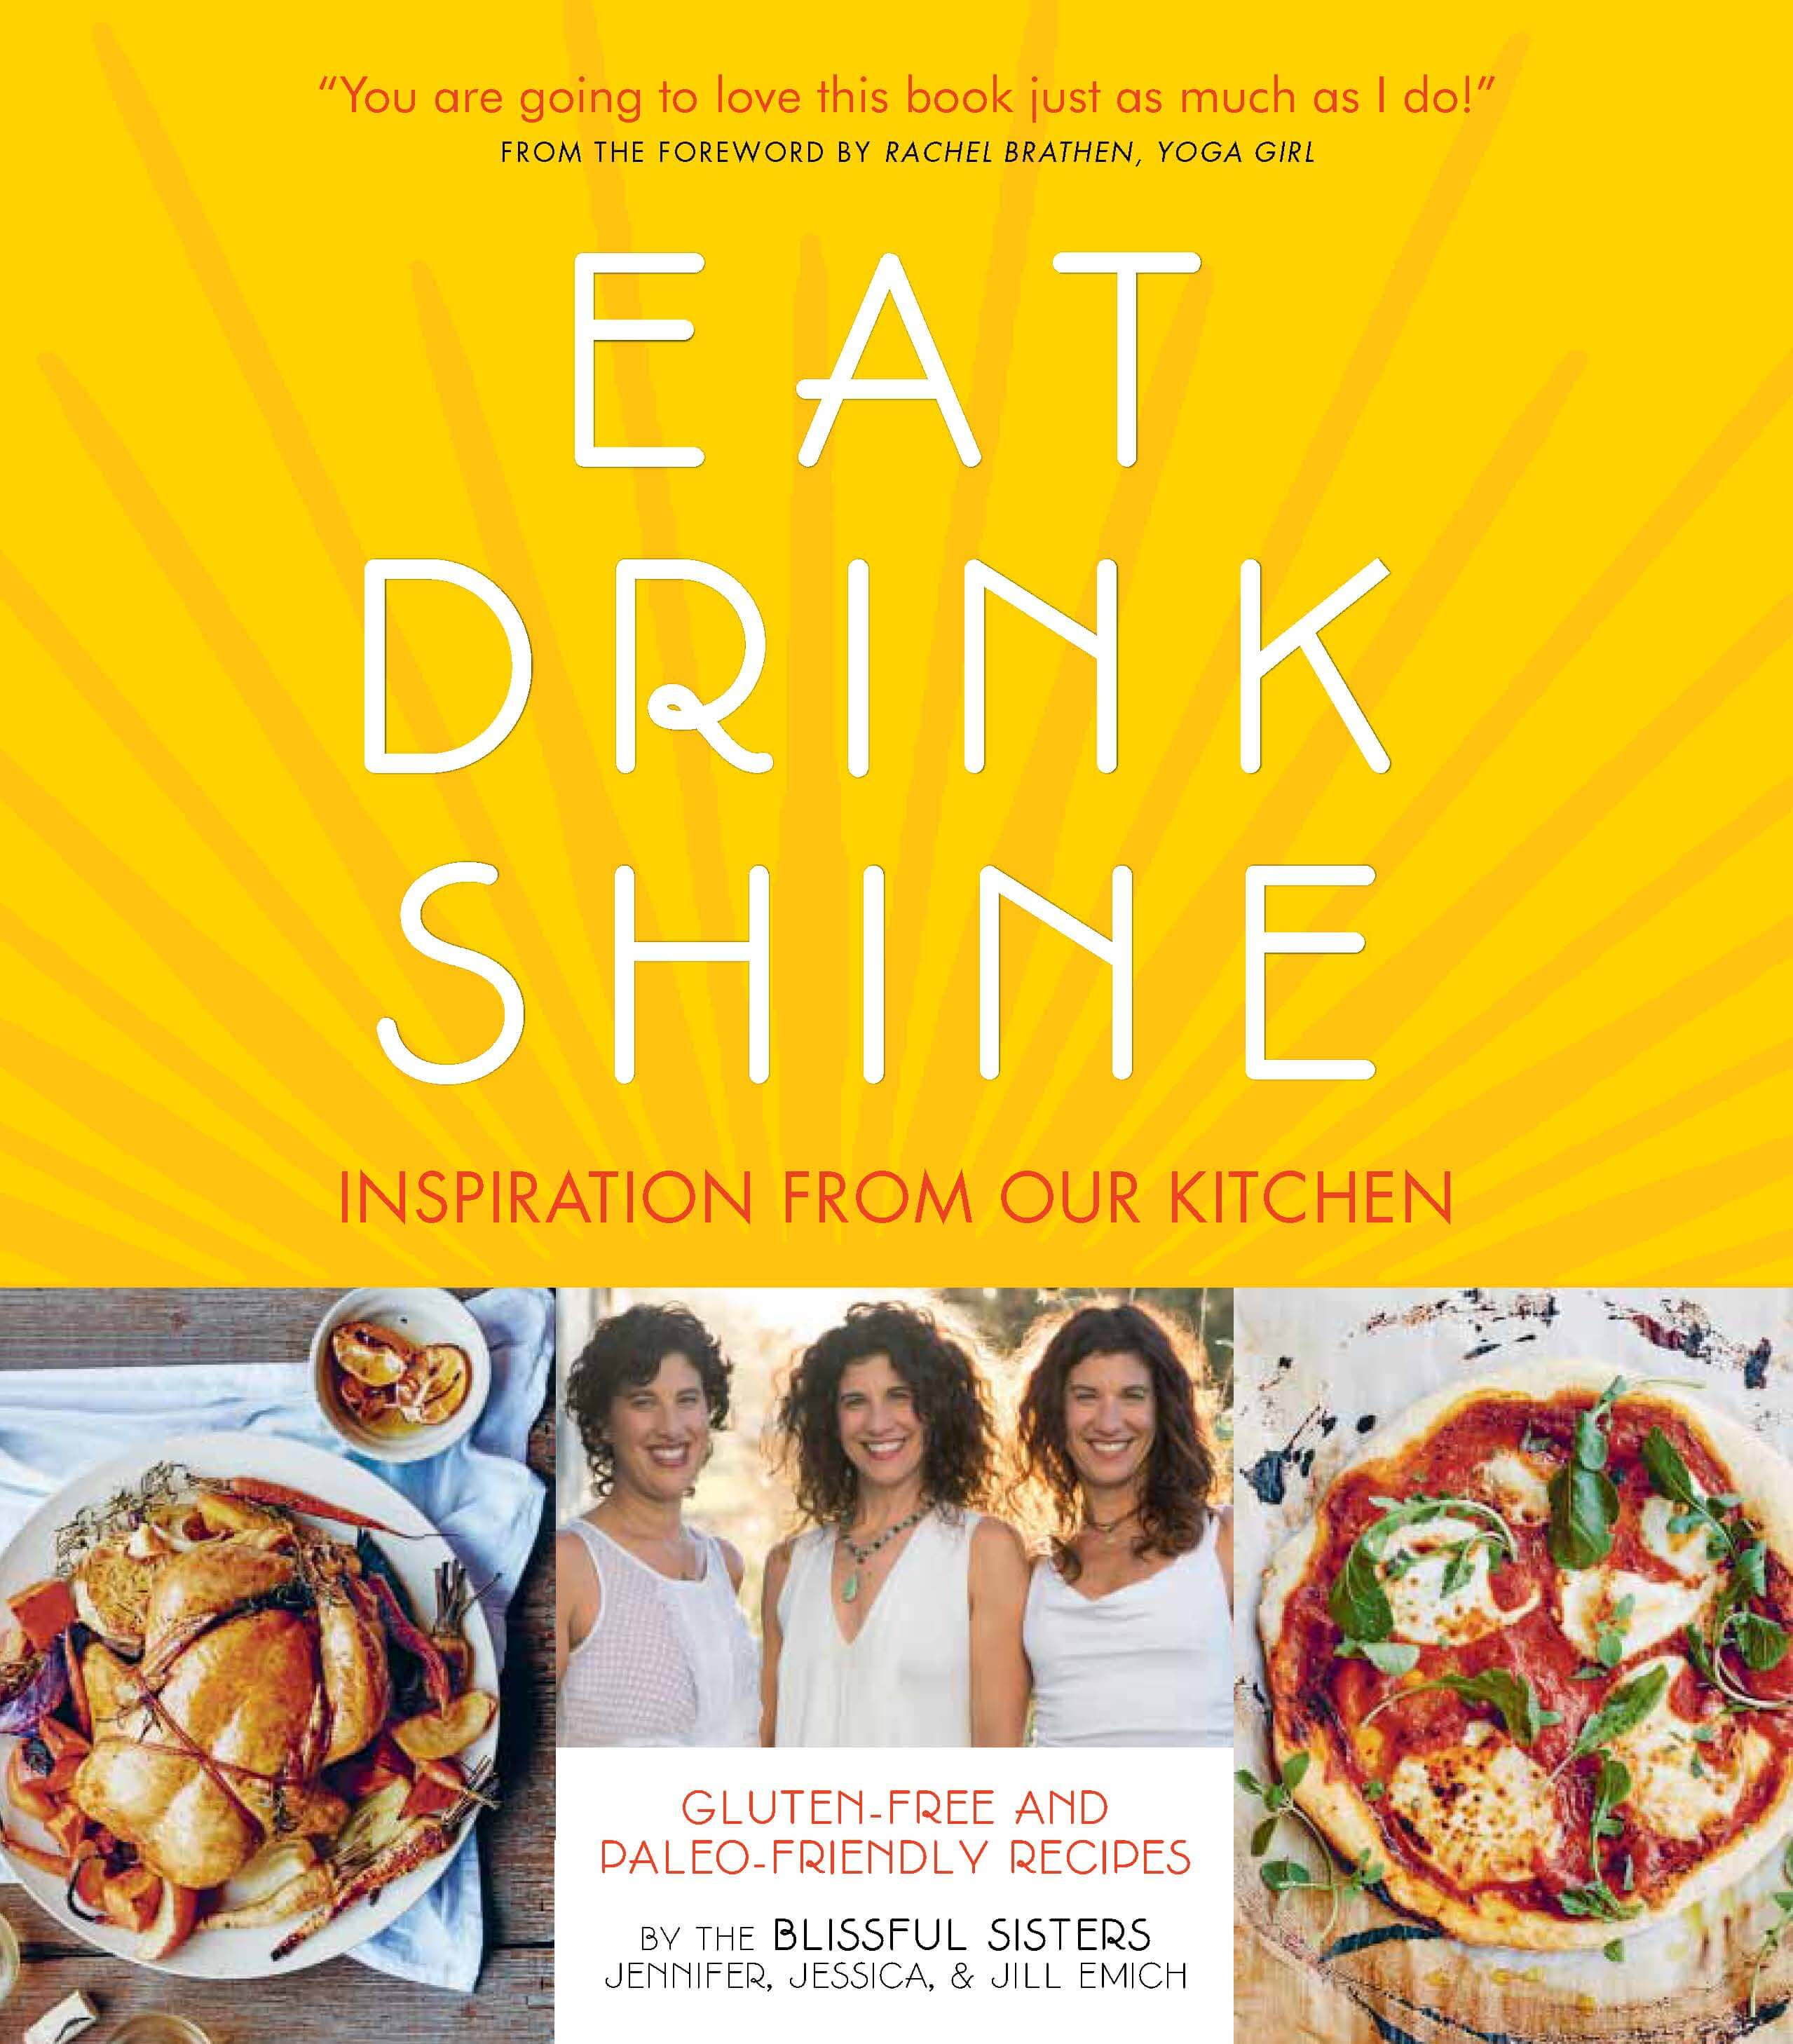 Eat Drink Shine - Paleo and Gluten Free Cookbook from the Blissful Sisters